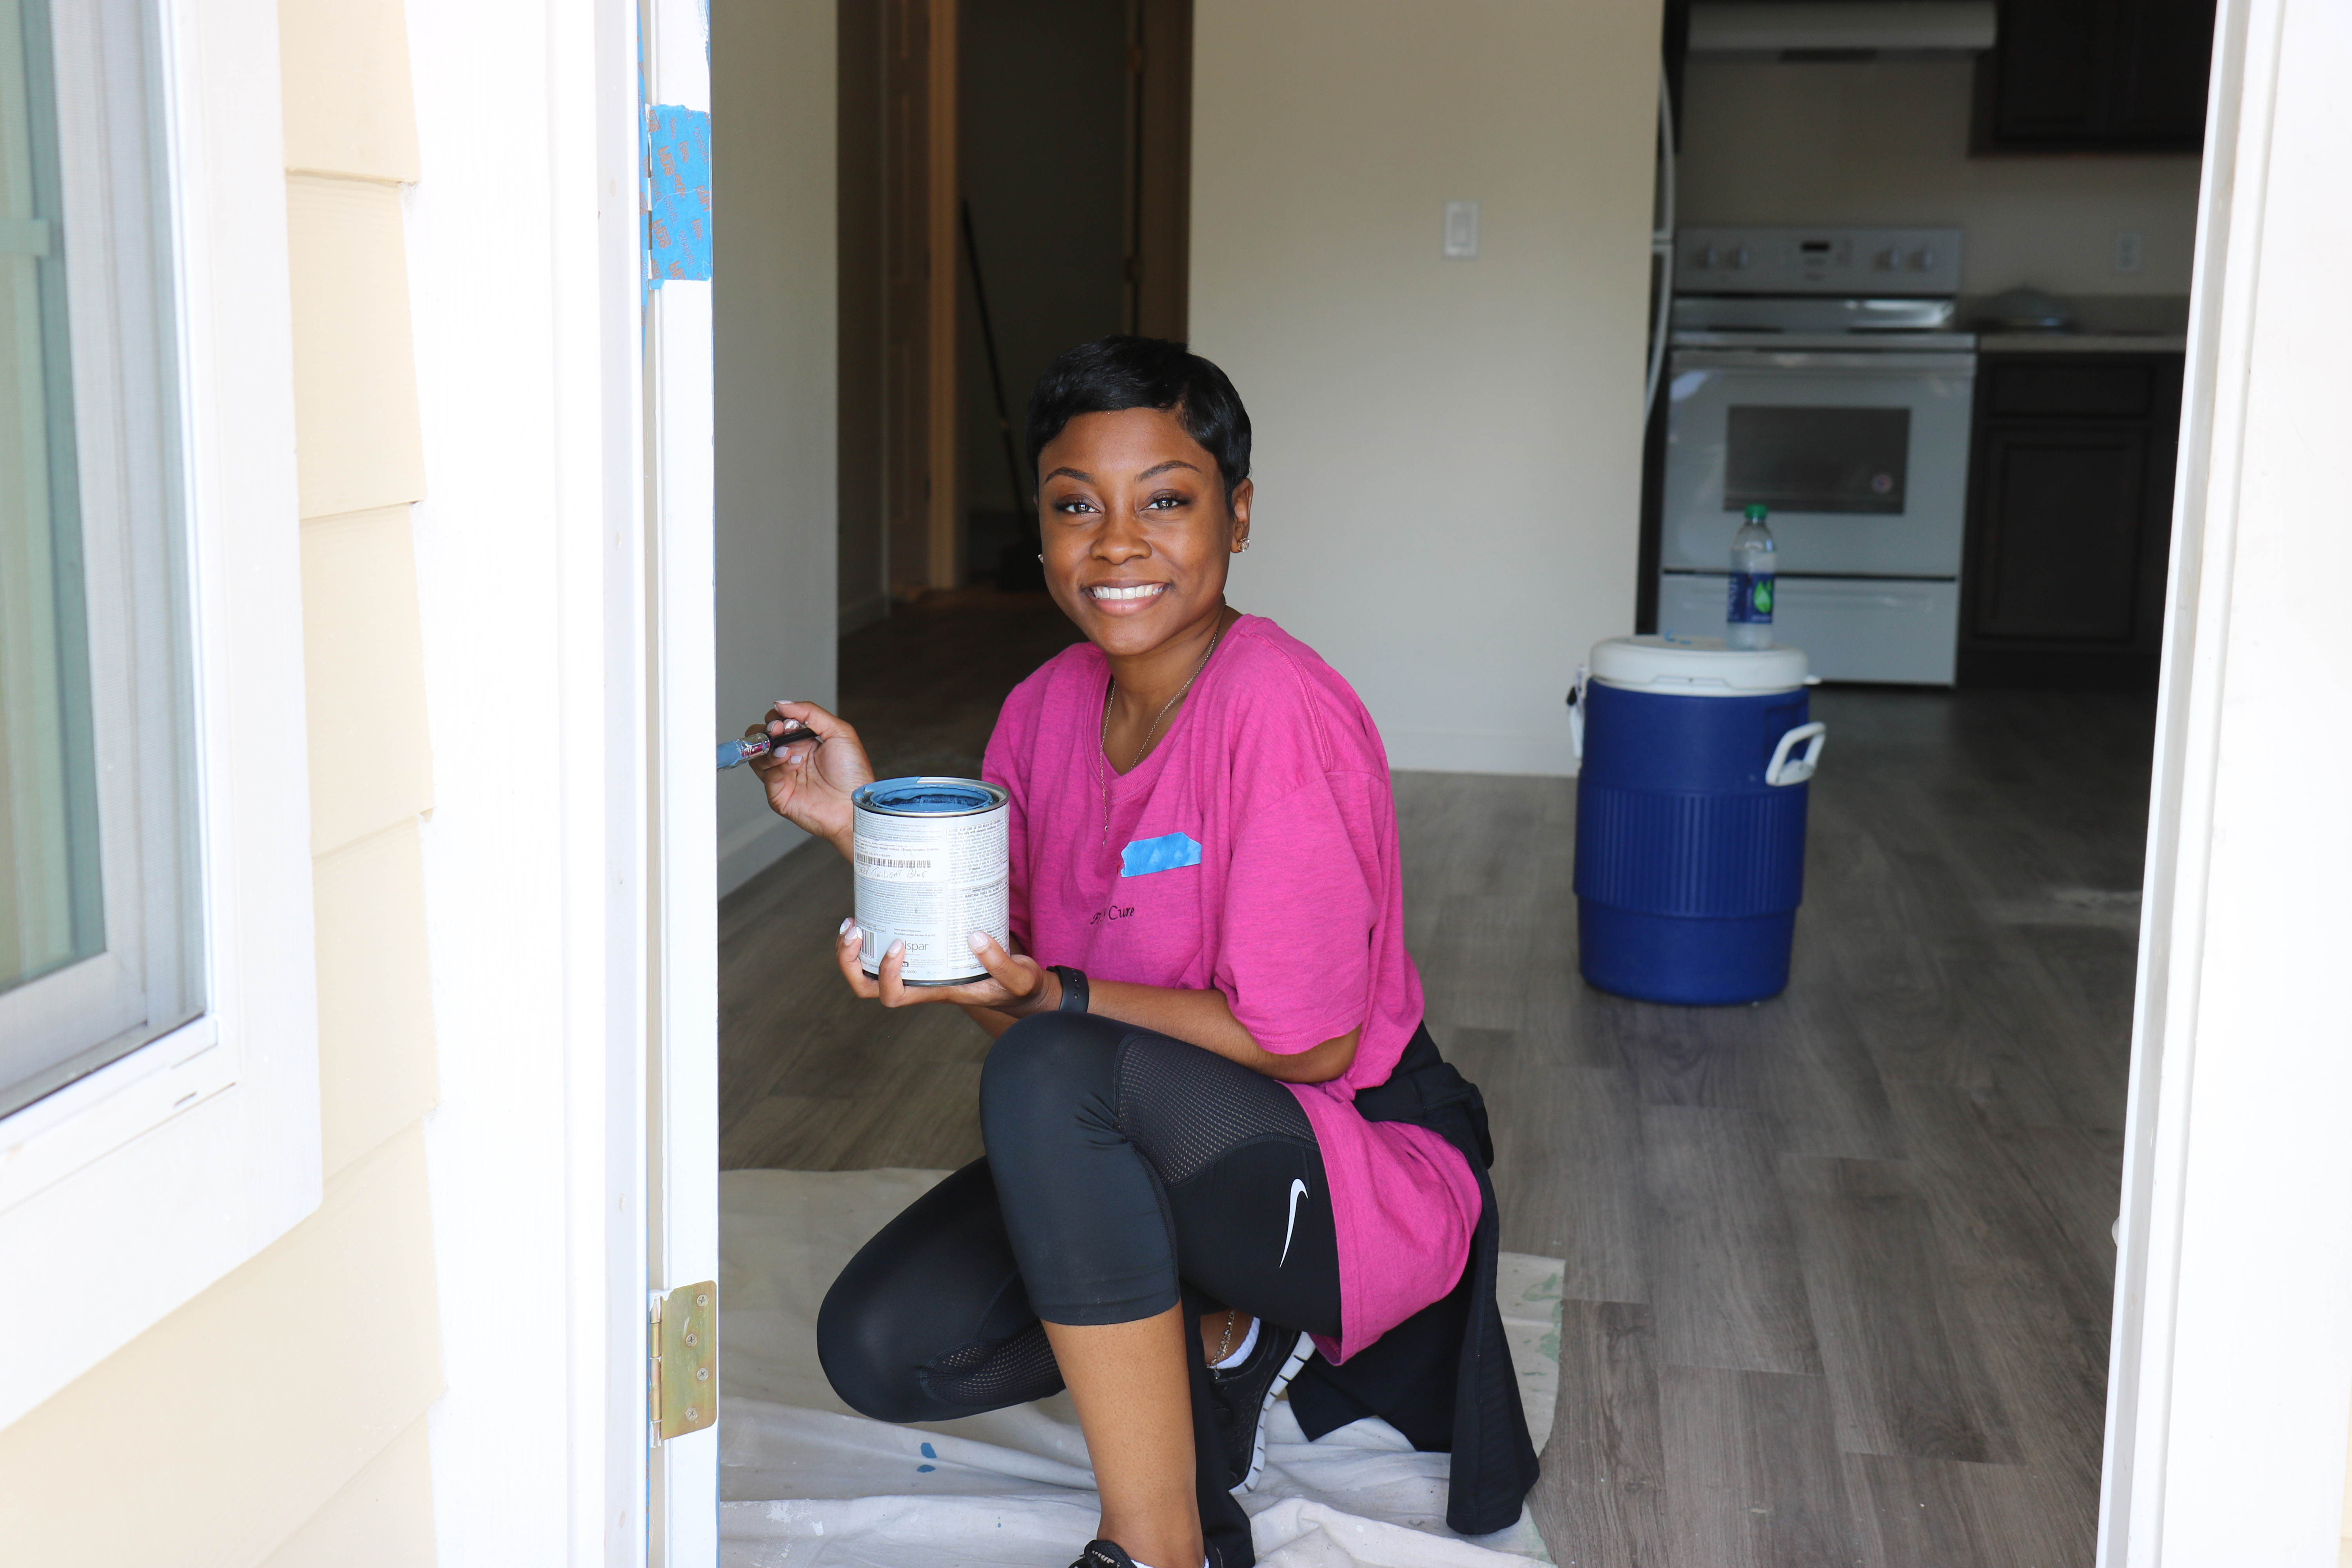 Smiling volunteer painting exterior door frame with blue cooler and kitchen in background